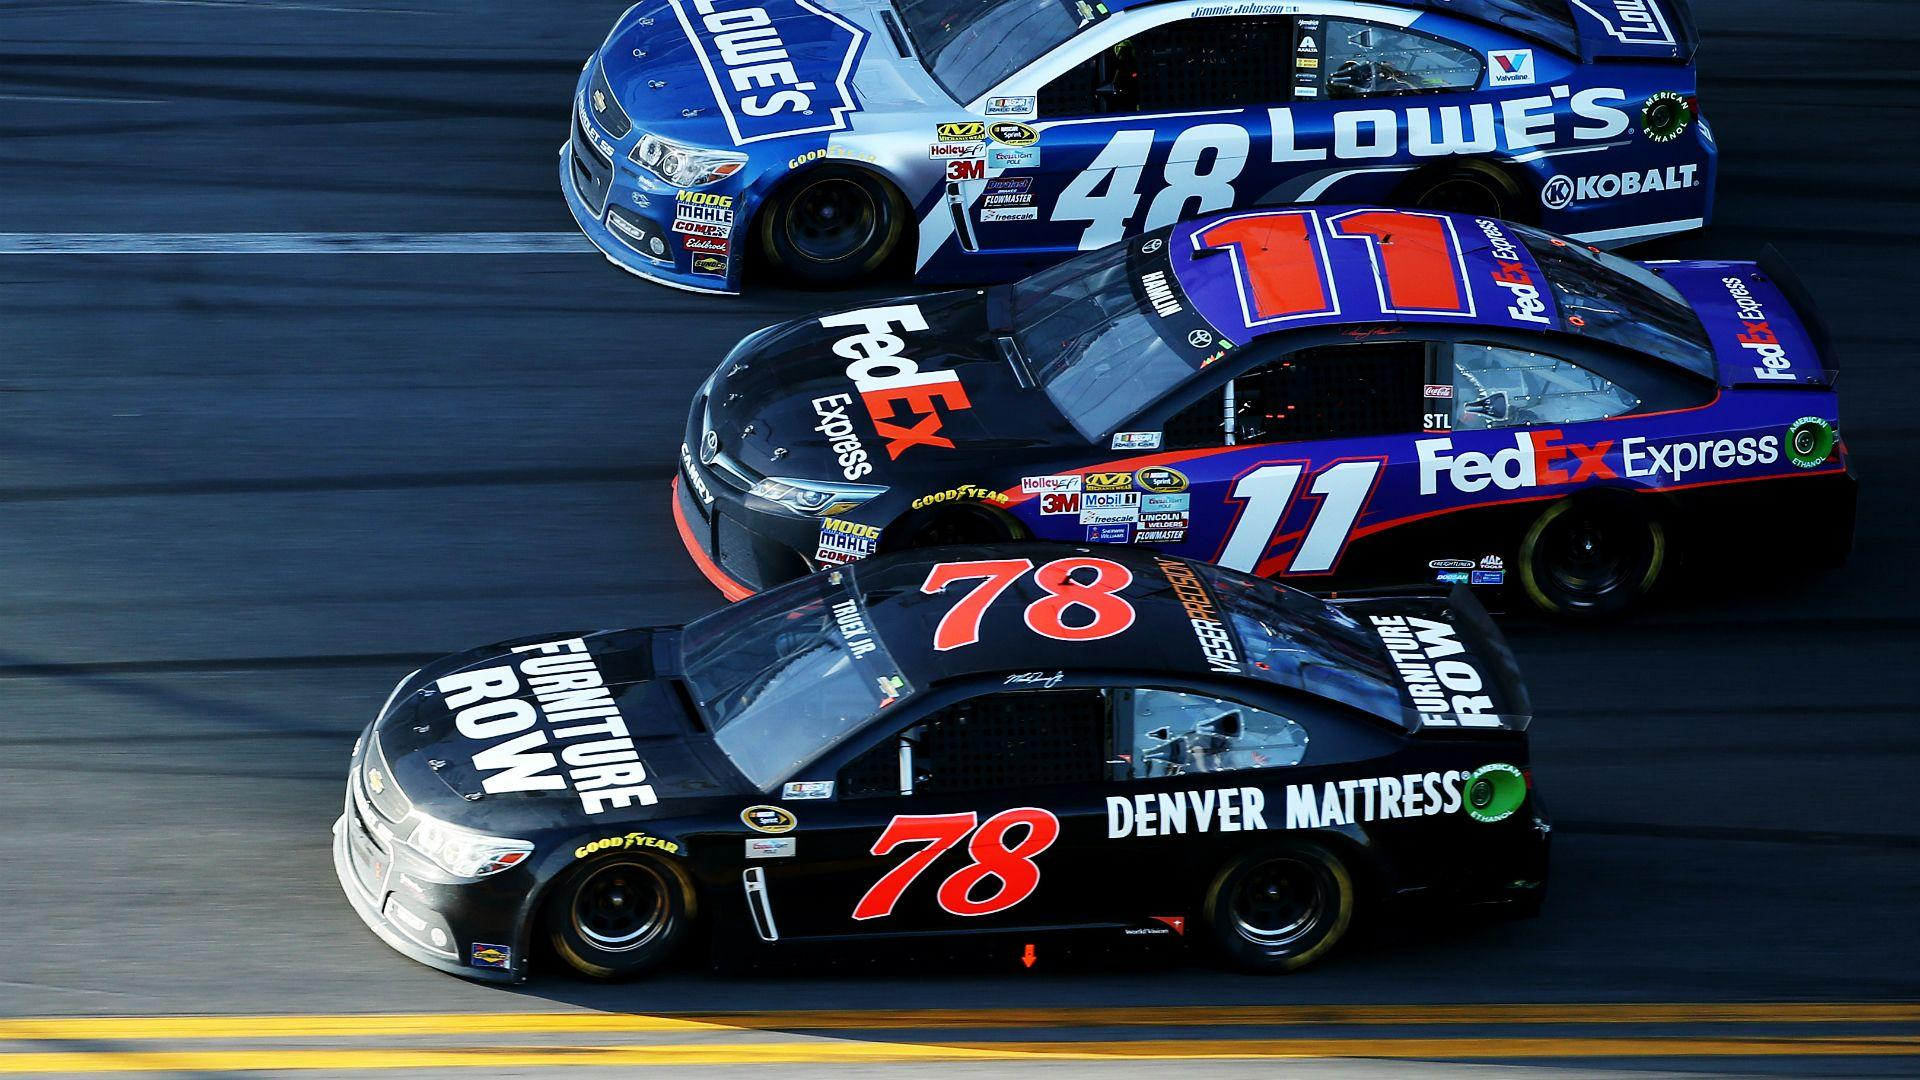 Through two races, things looking pretty good for Martin Truex Jr